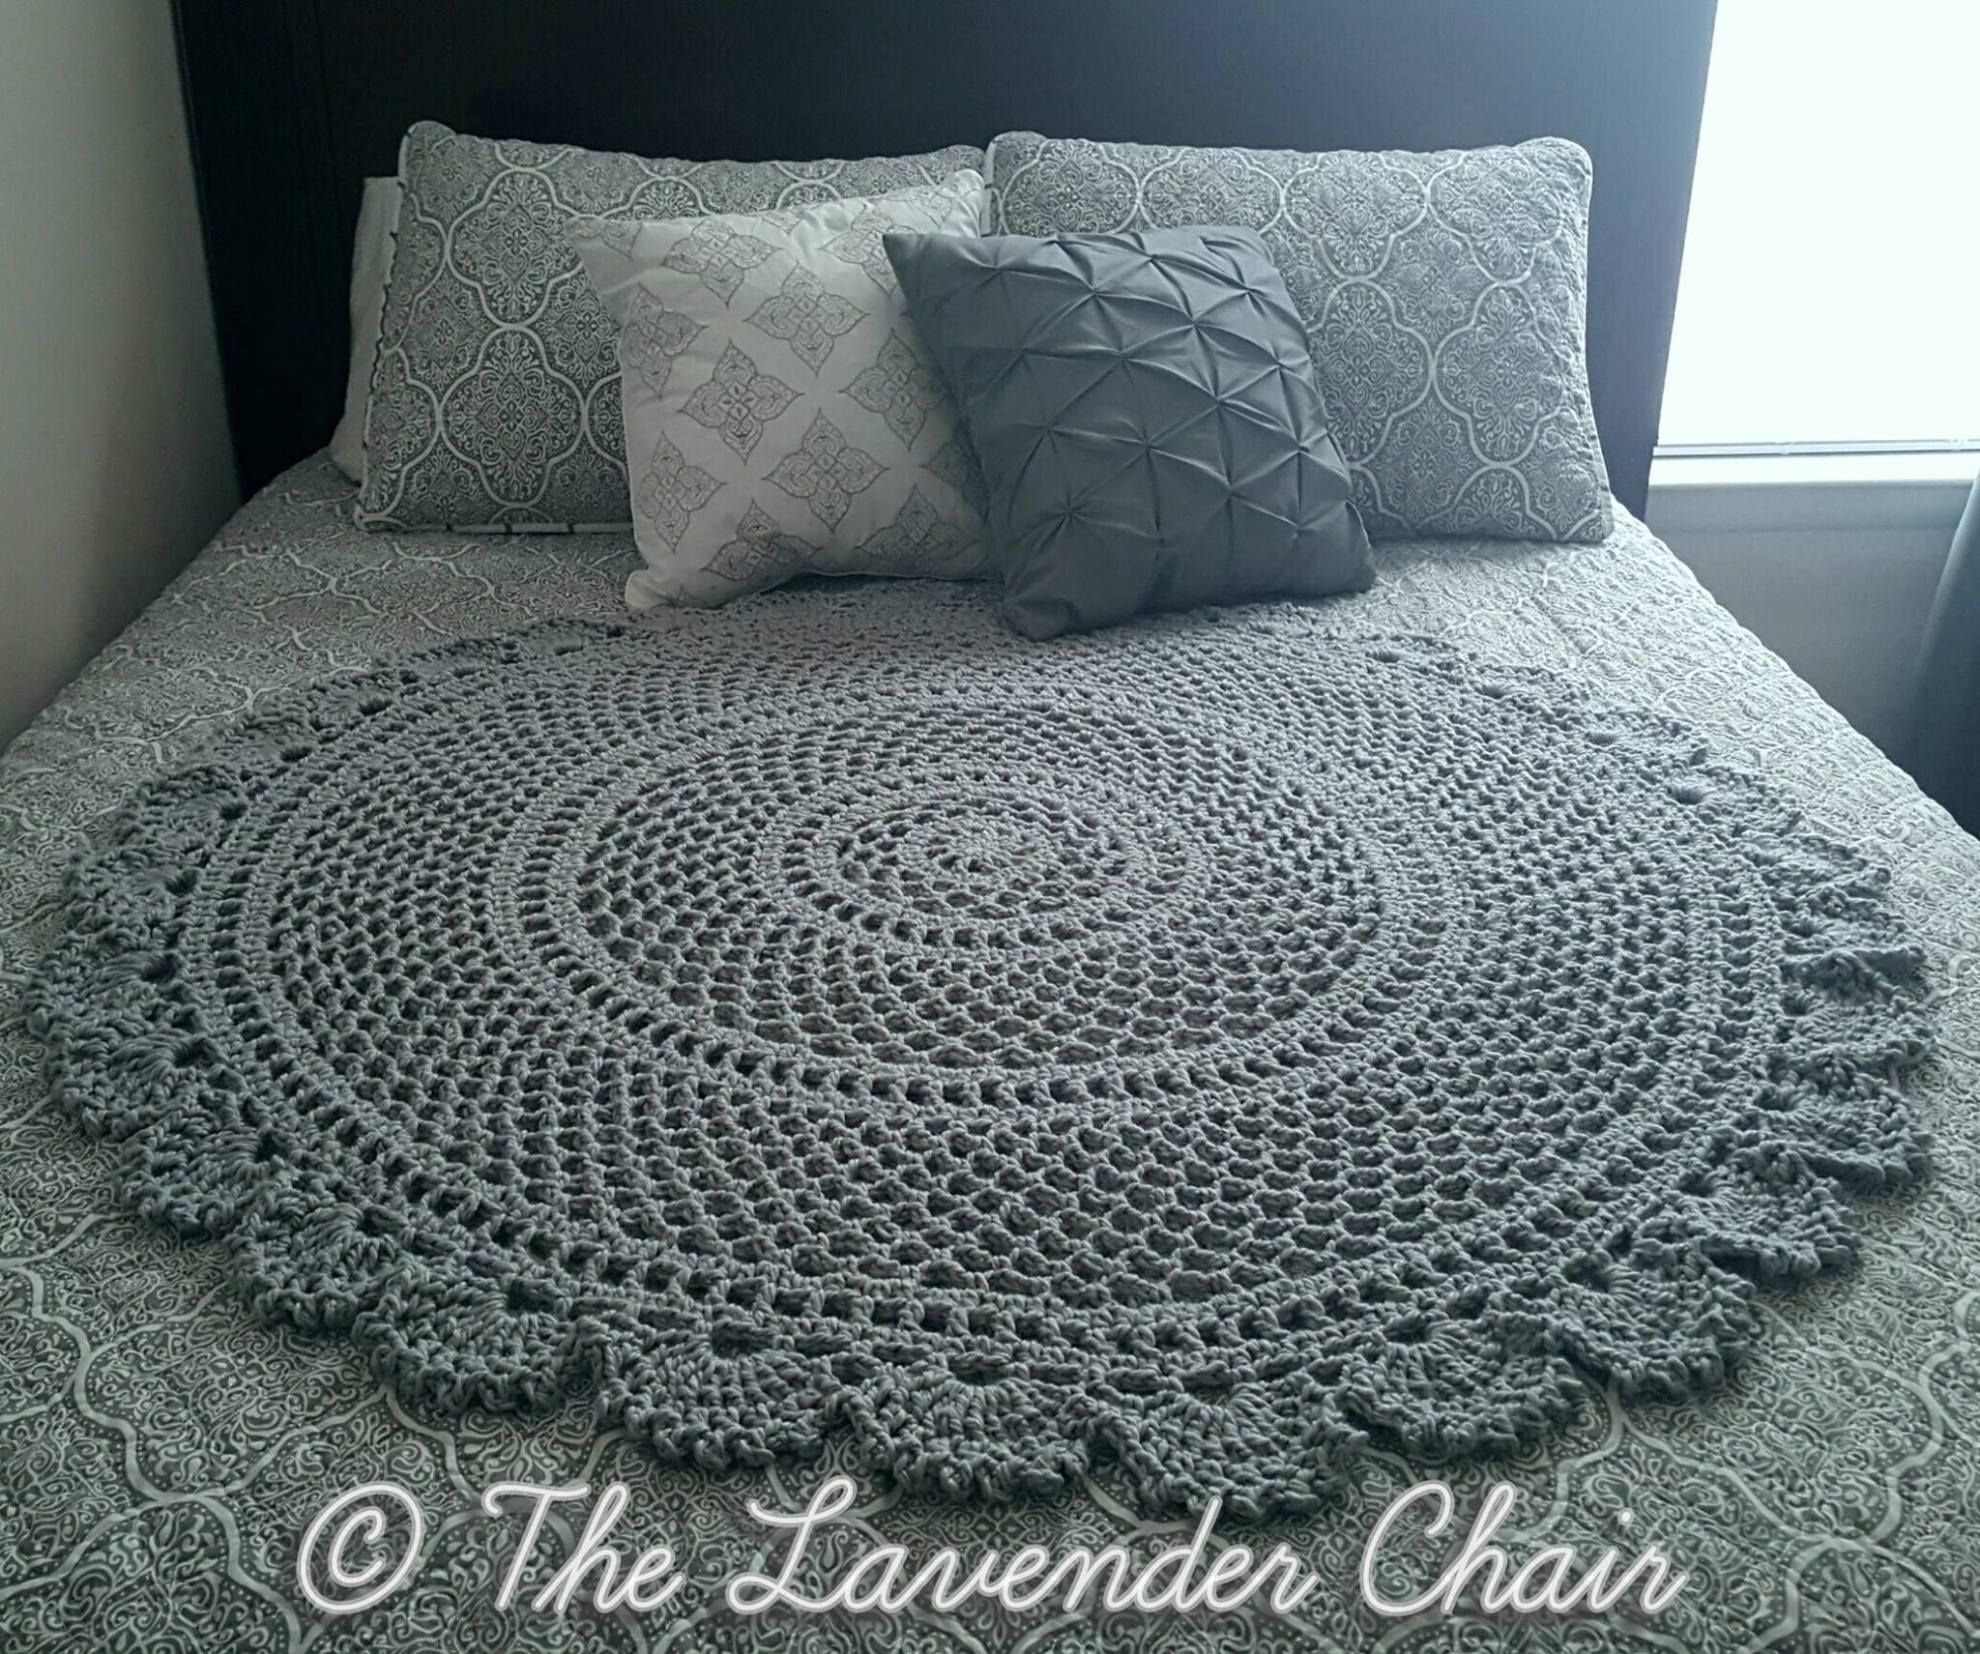 Ring Around the Rosie Mandala Blanket Crochet Pattern - The Lavender ...